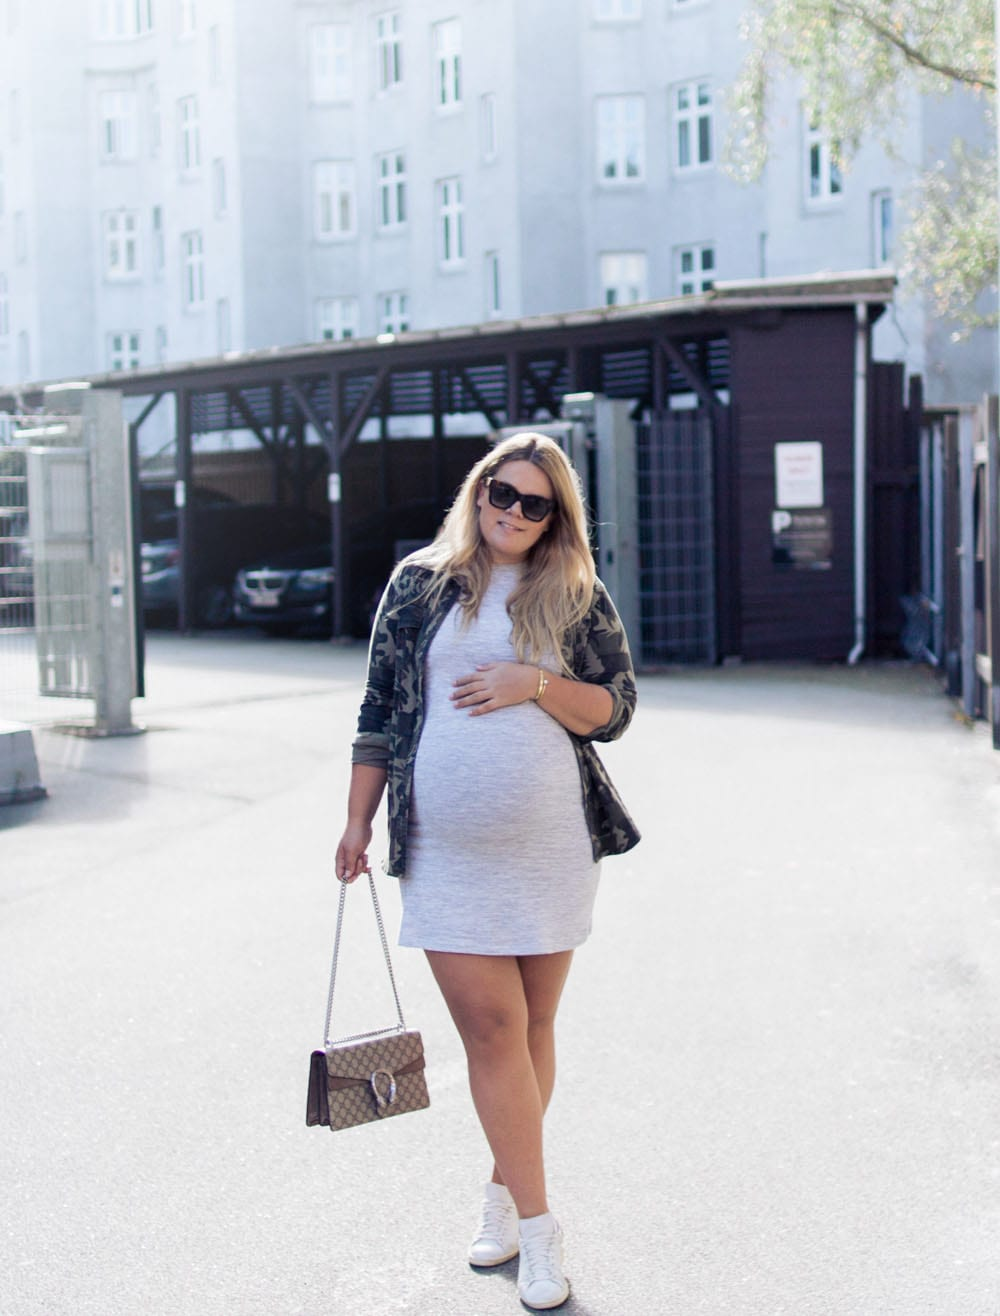 gravid-kjole-acie-uge-40-outfit-15-of-15